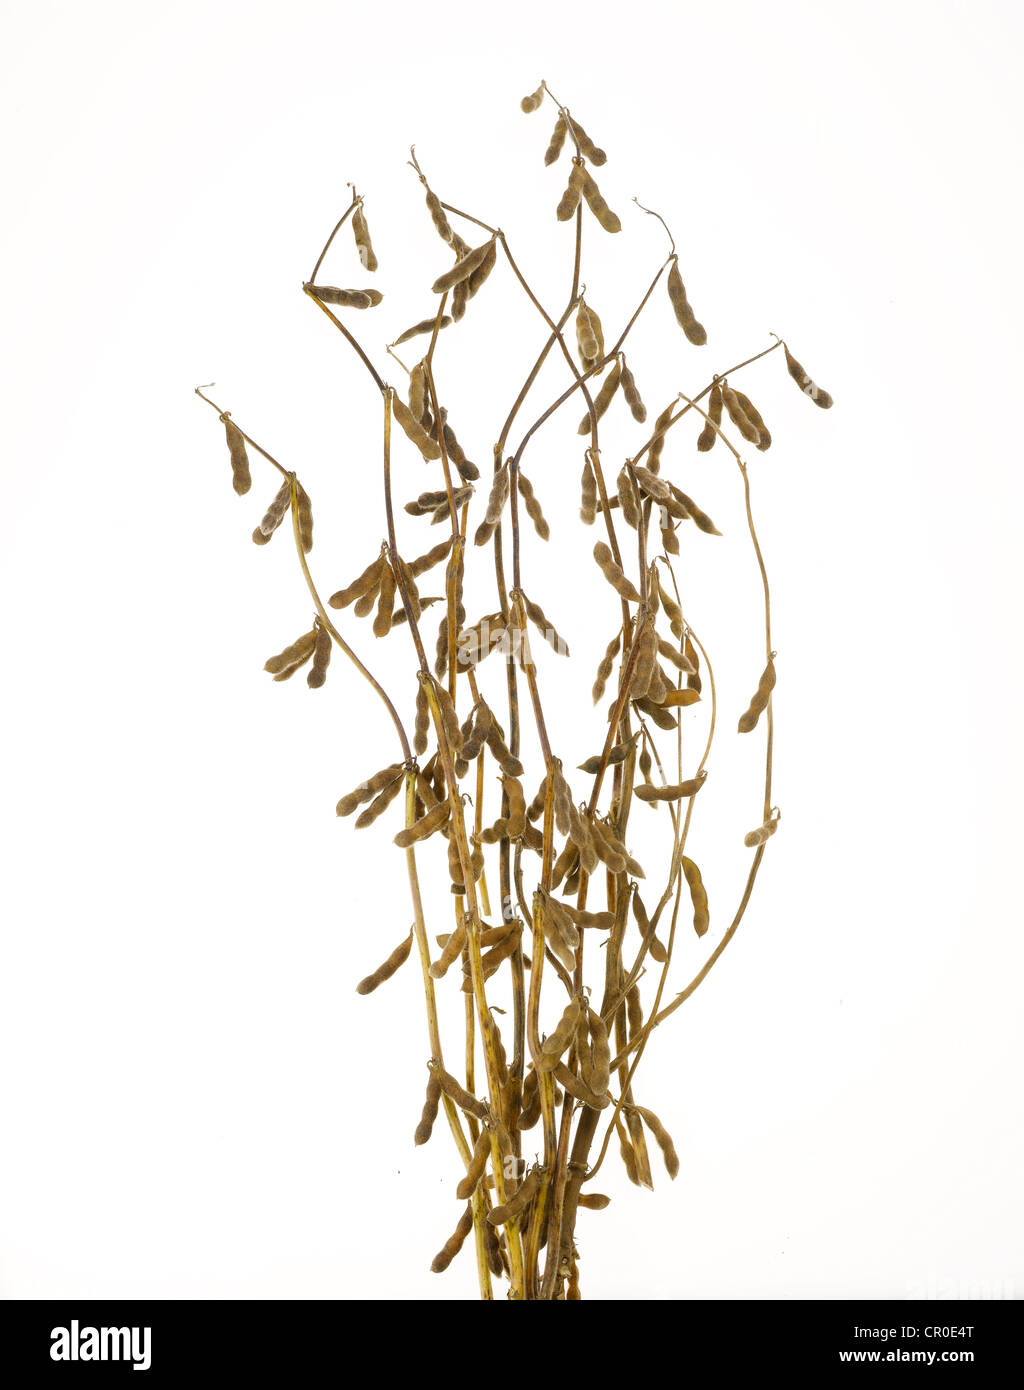 dried yellow soy bean plant with pods - Stock Image